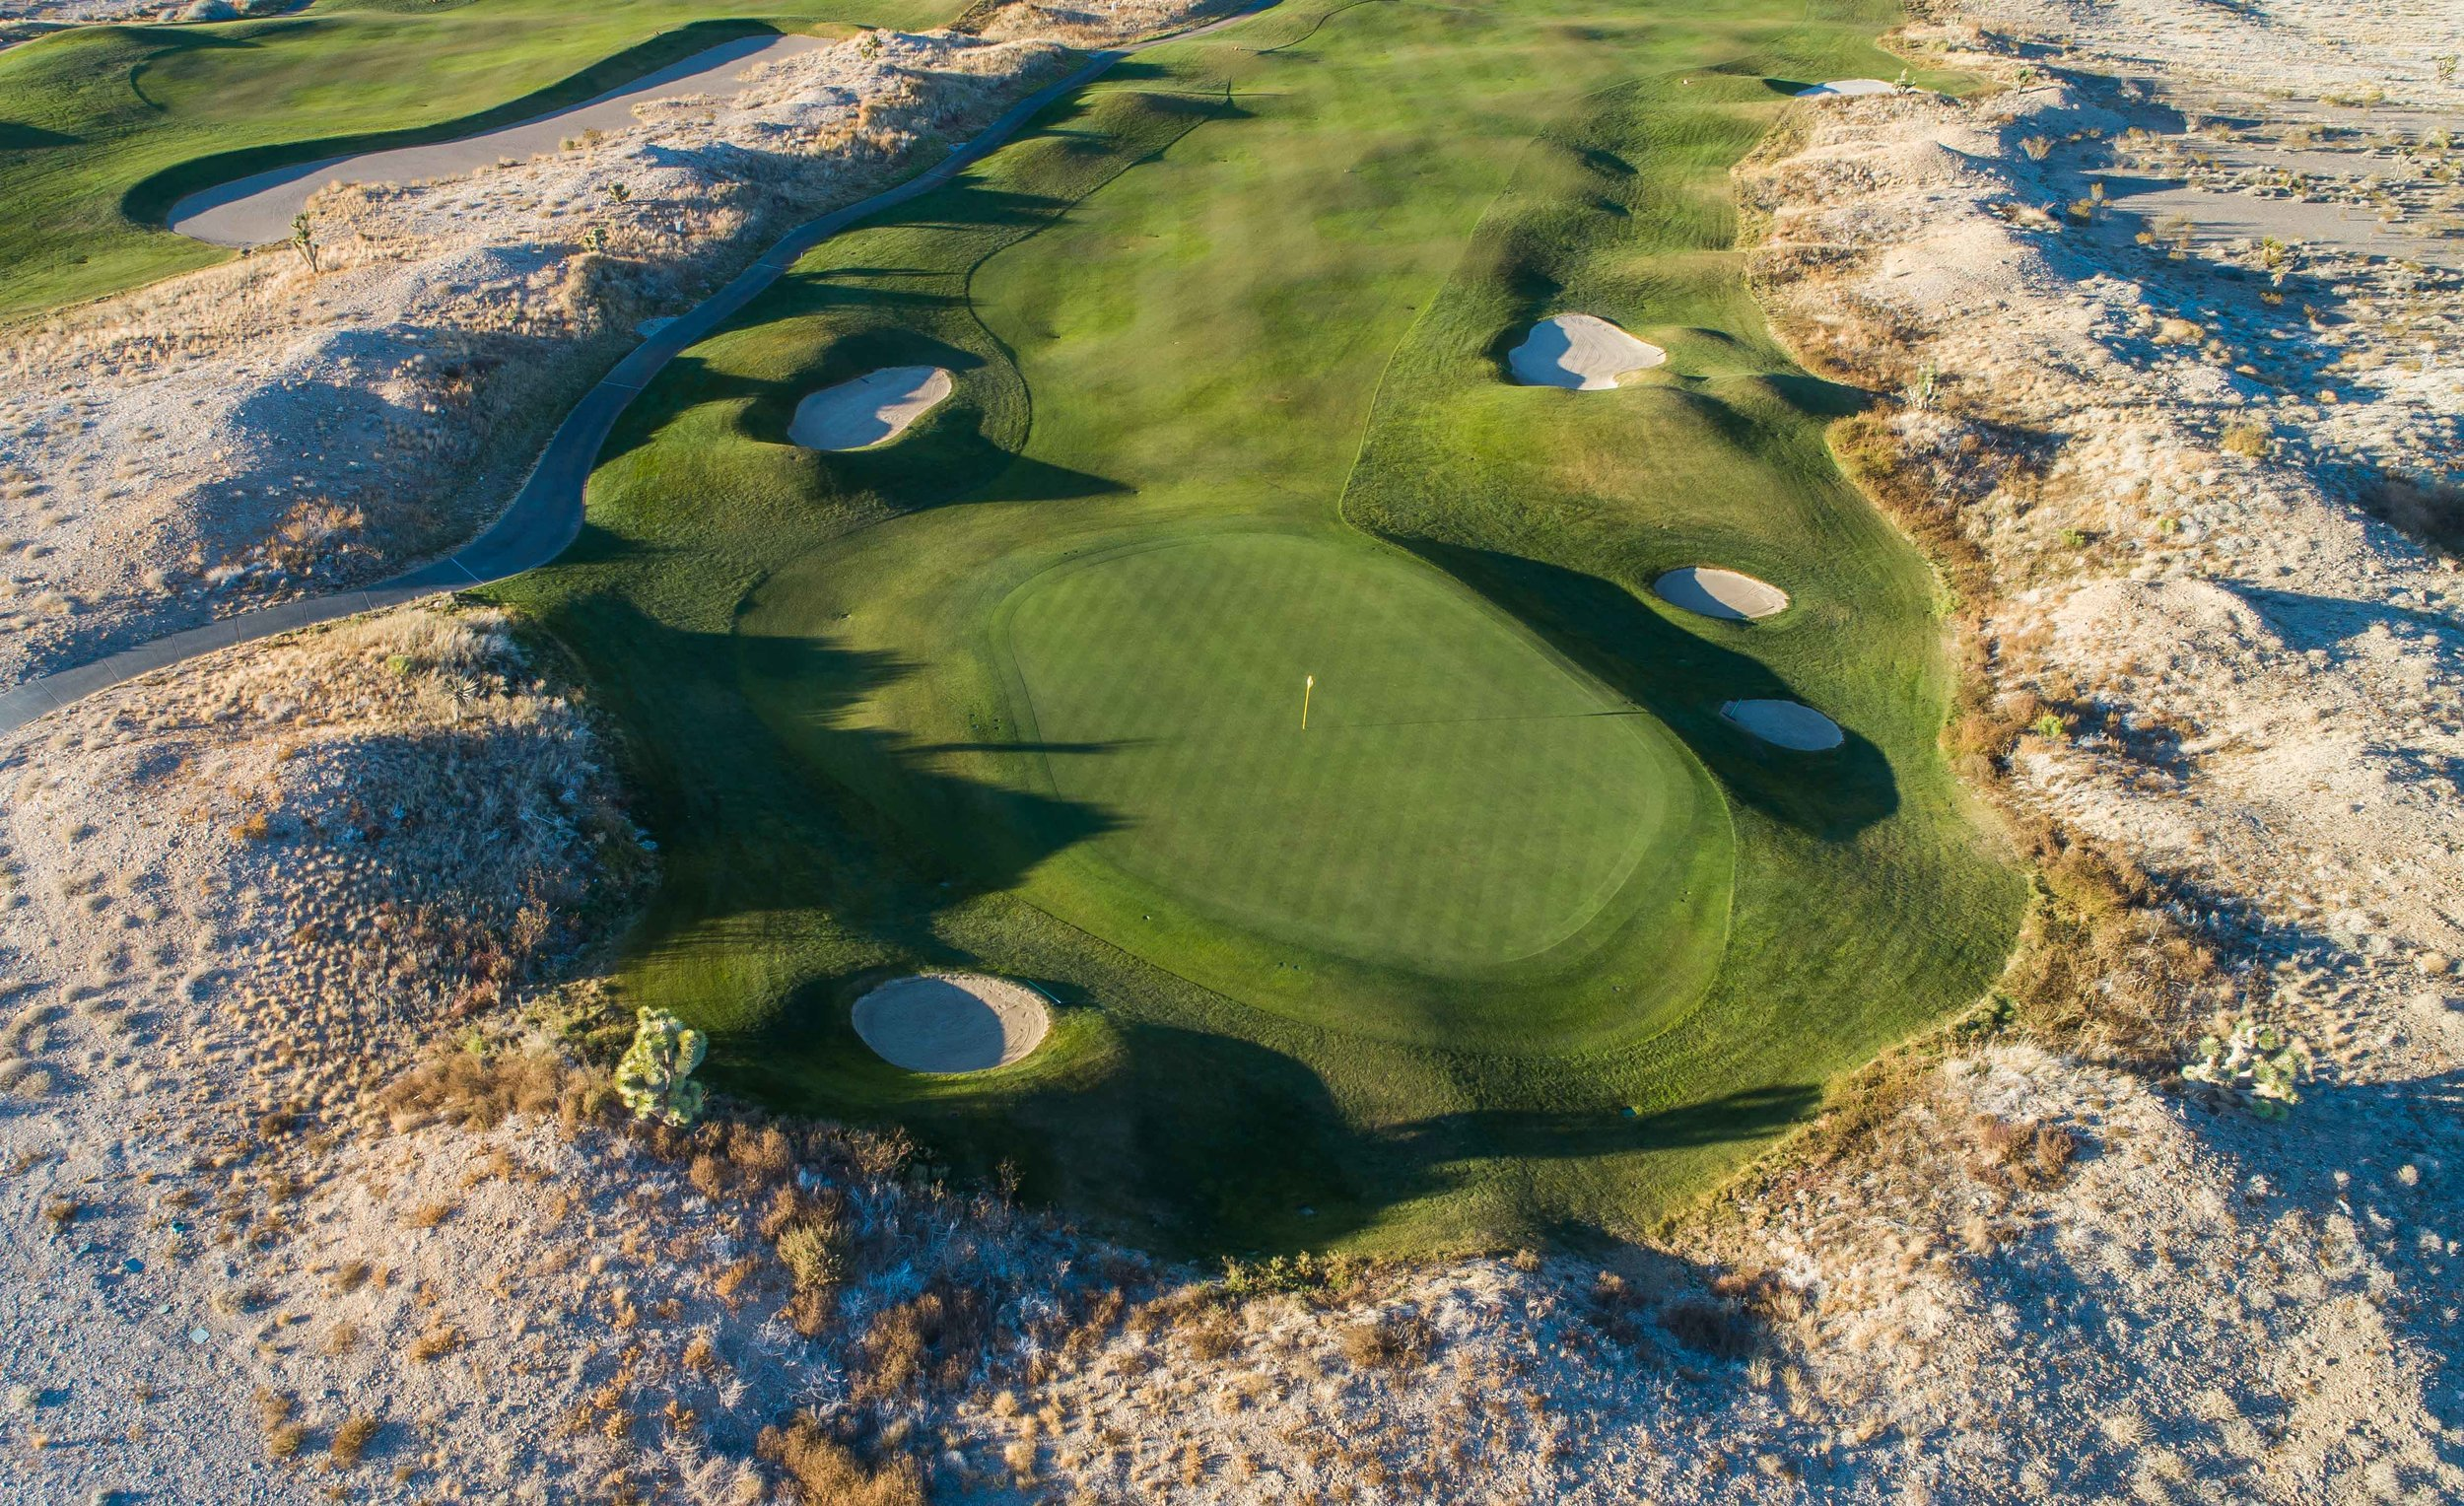 Paiute's Wolf Course